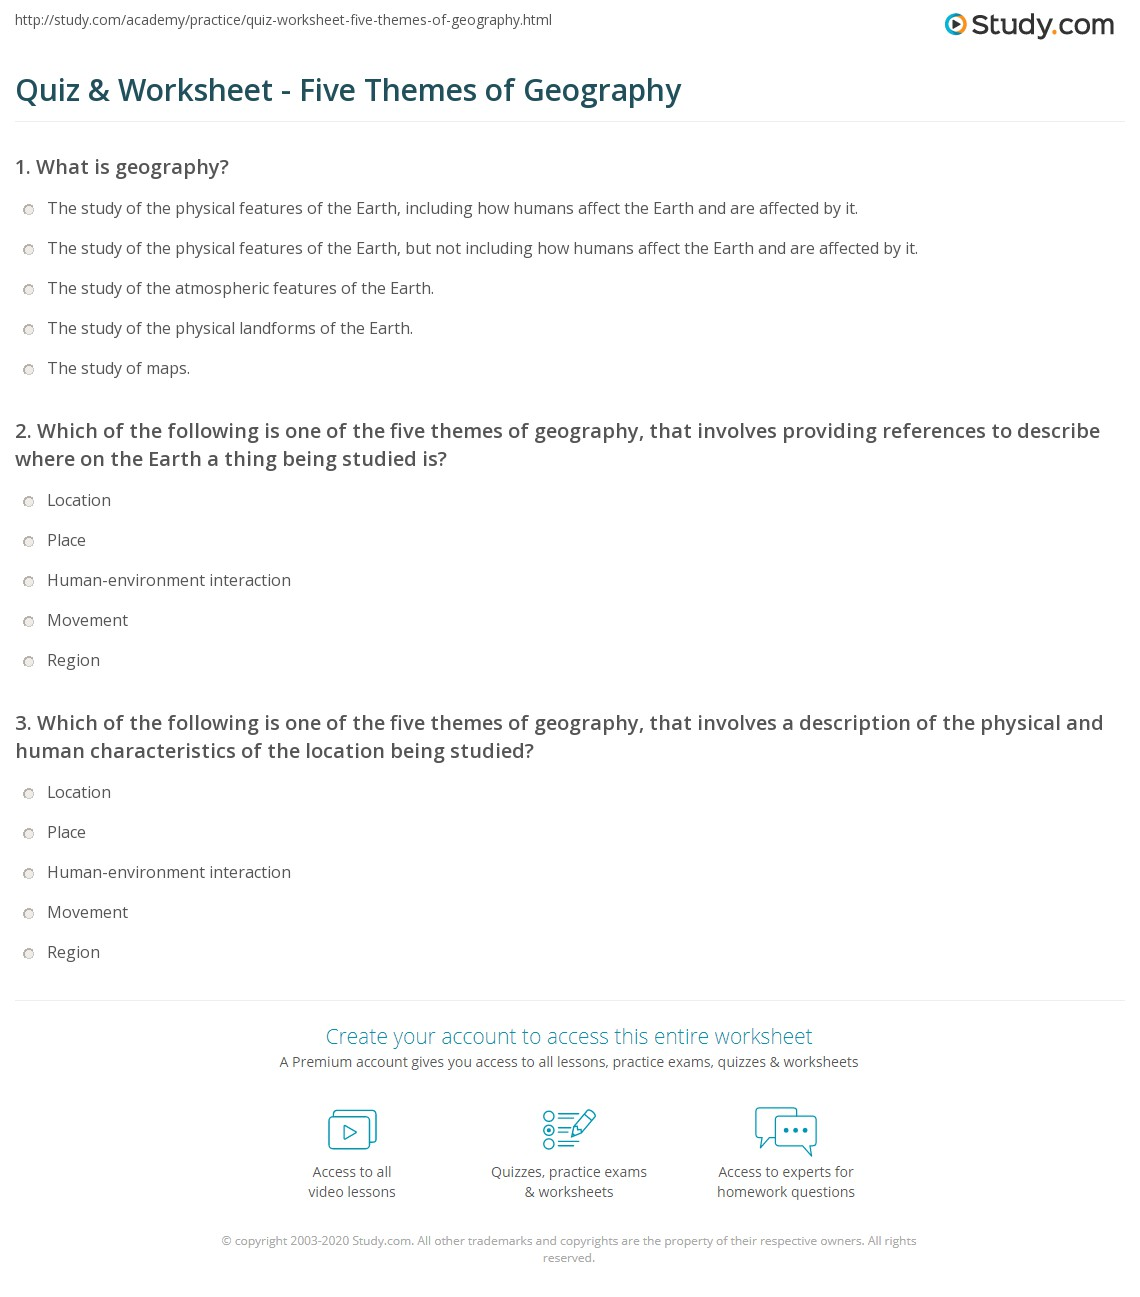 Worksheet Themes Of Geography Worksheet quiz worksheet five themes of geography study com print what are the worksheet